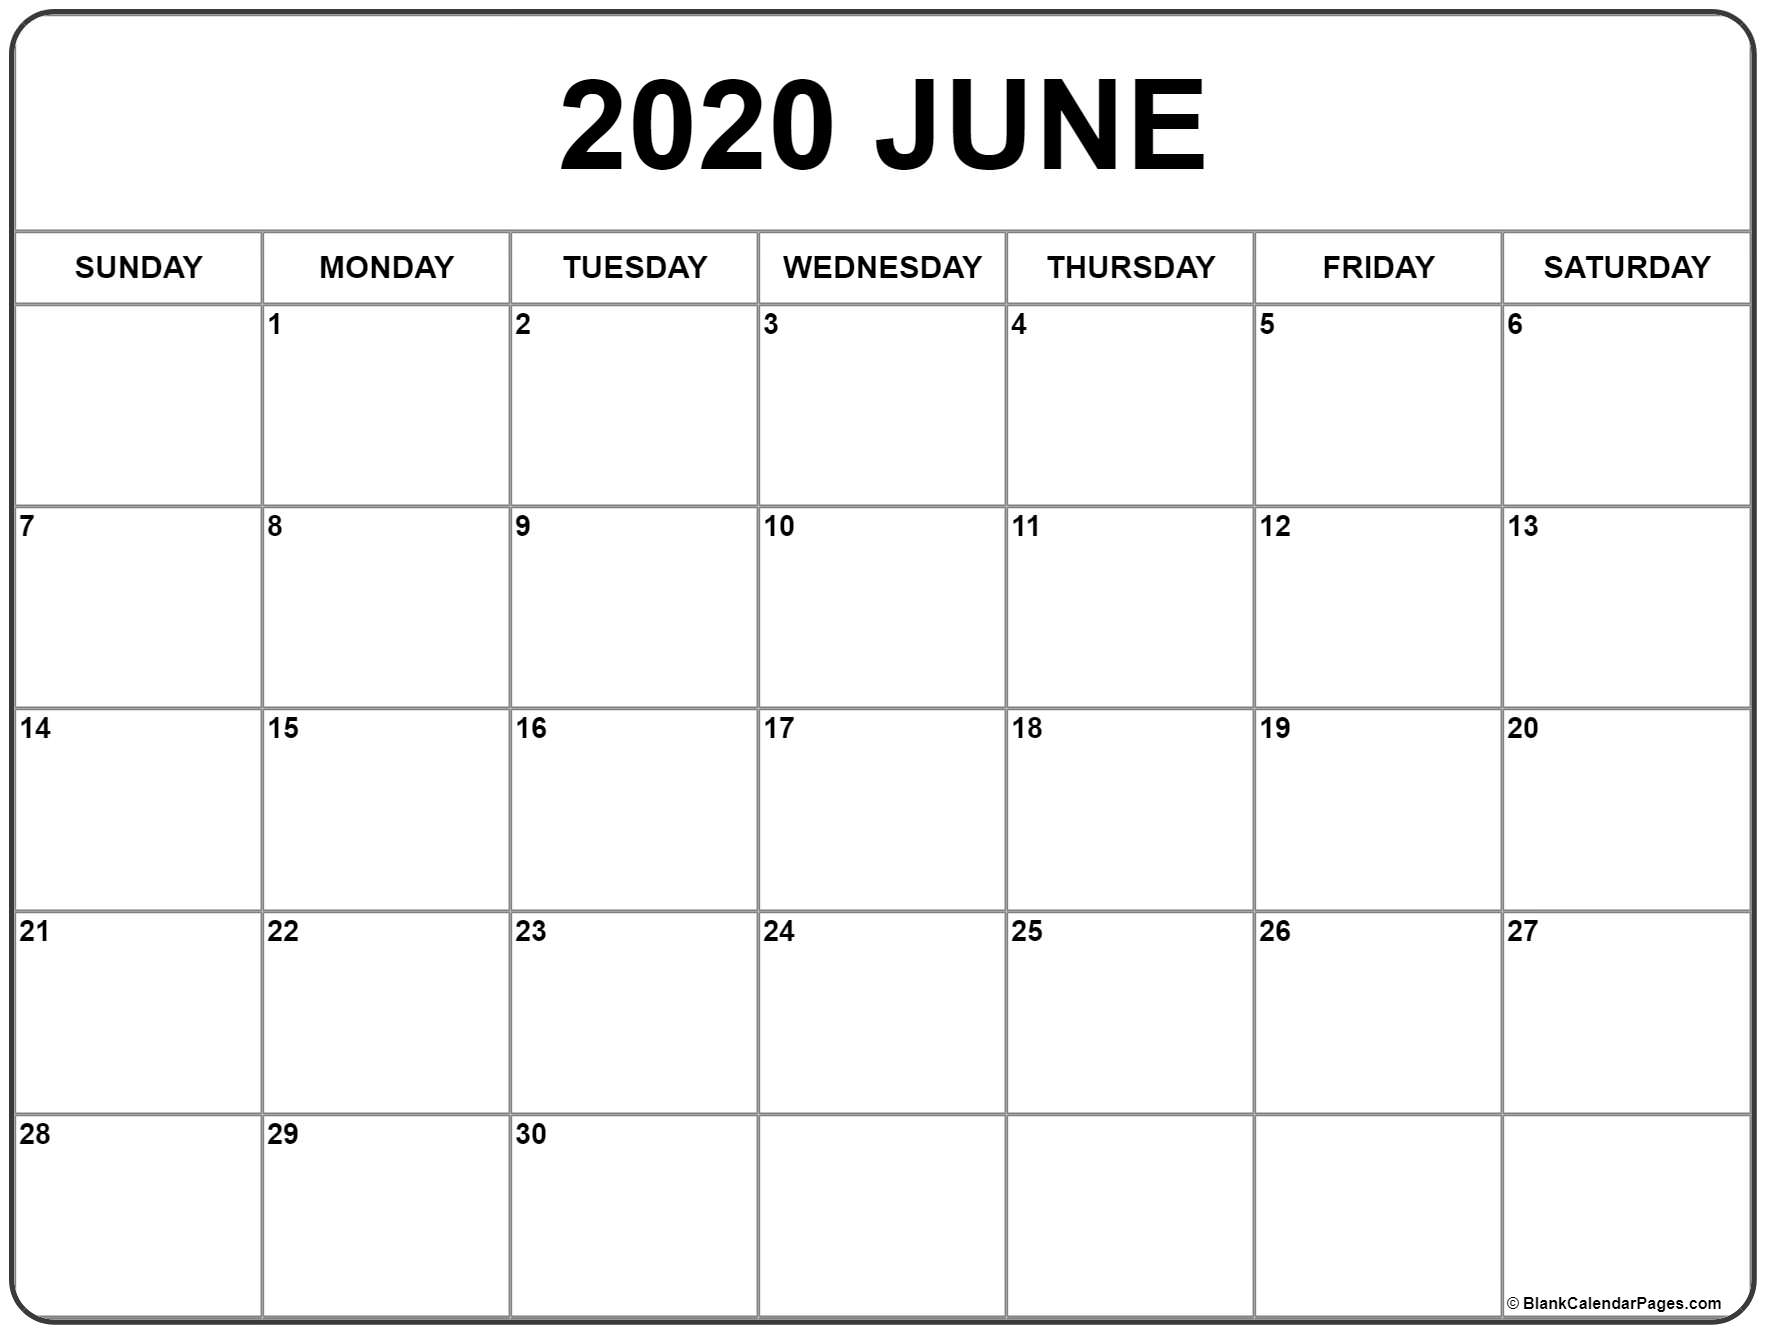 June 2020 Calendar | Free Printable Monthly Calendars with Calender 2020 With Space To Write